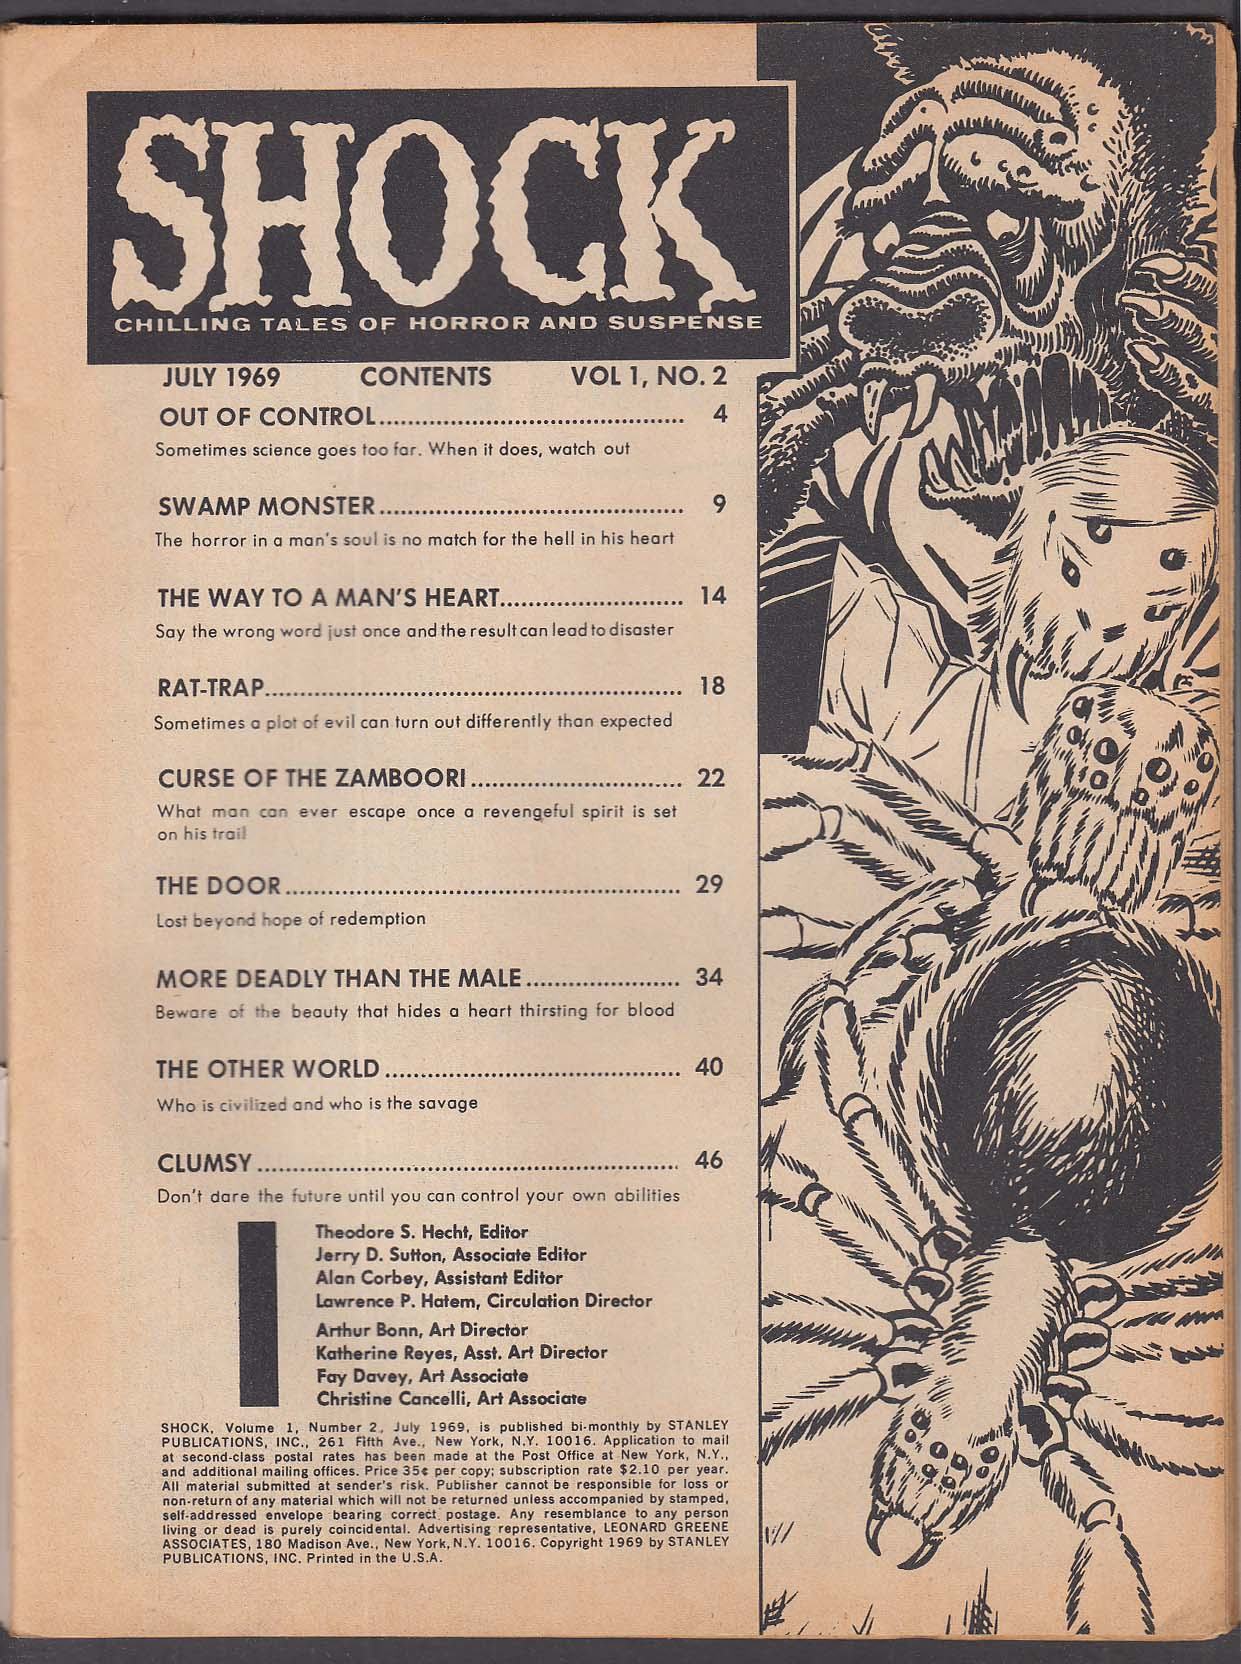 SHOCK #2 Stanley comic book 7 1969 Chilling Tales of Horror and Suspense